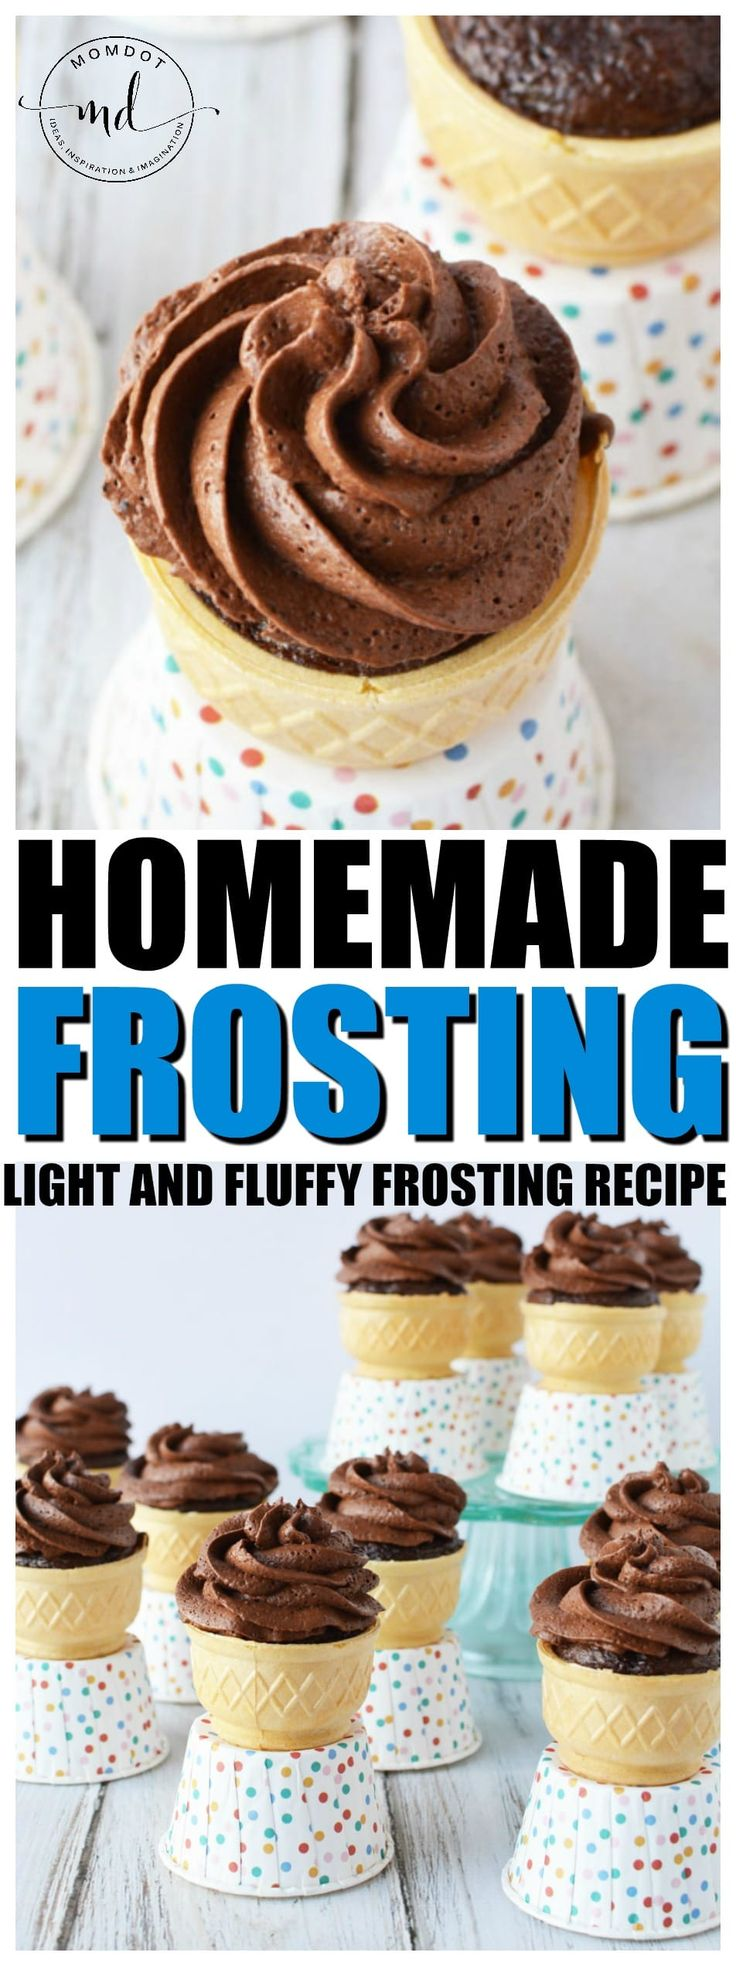 Frosting Recipe | How to make Homemade Frosting Light and Fluffy with SIMPLE Chocolate Frosting #desserts #cake #chocolate #frosting